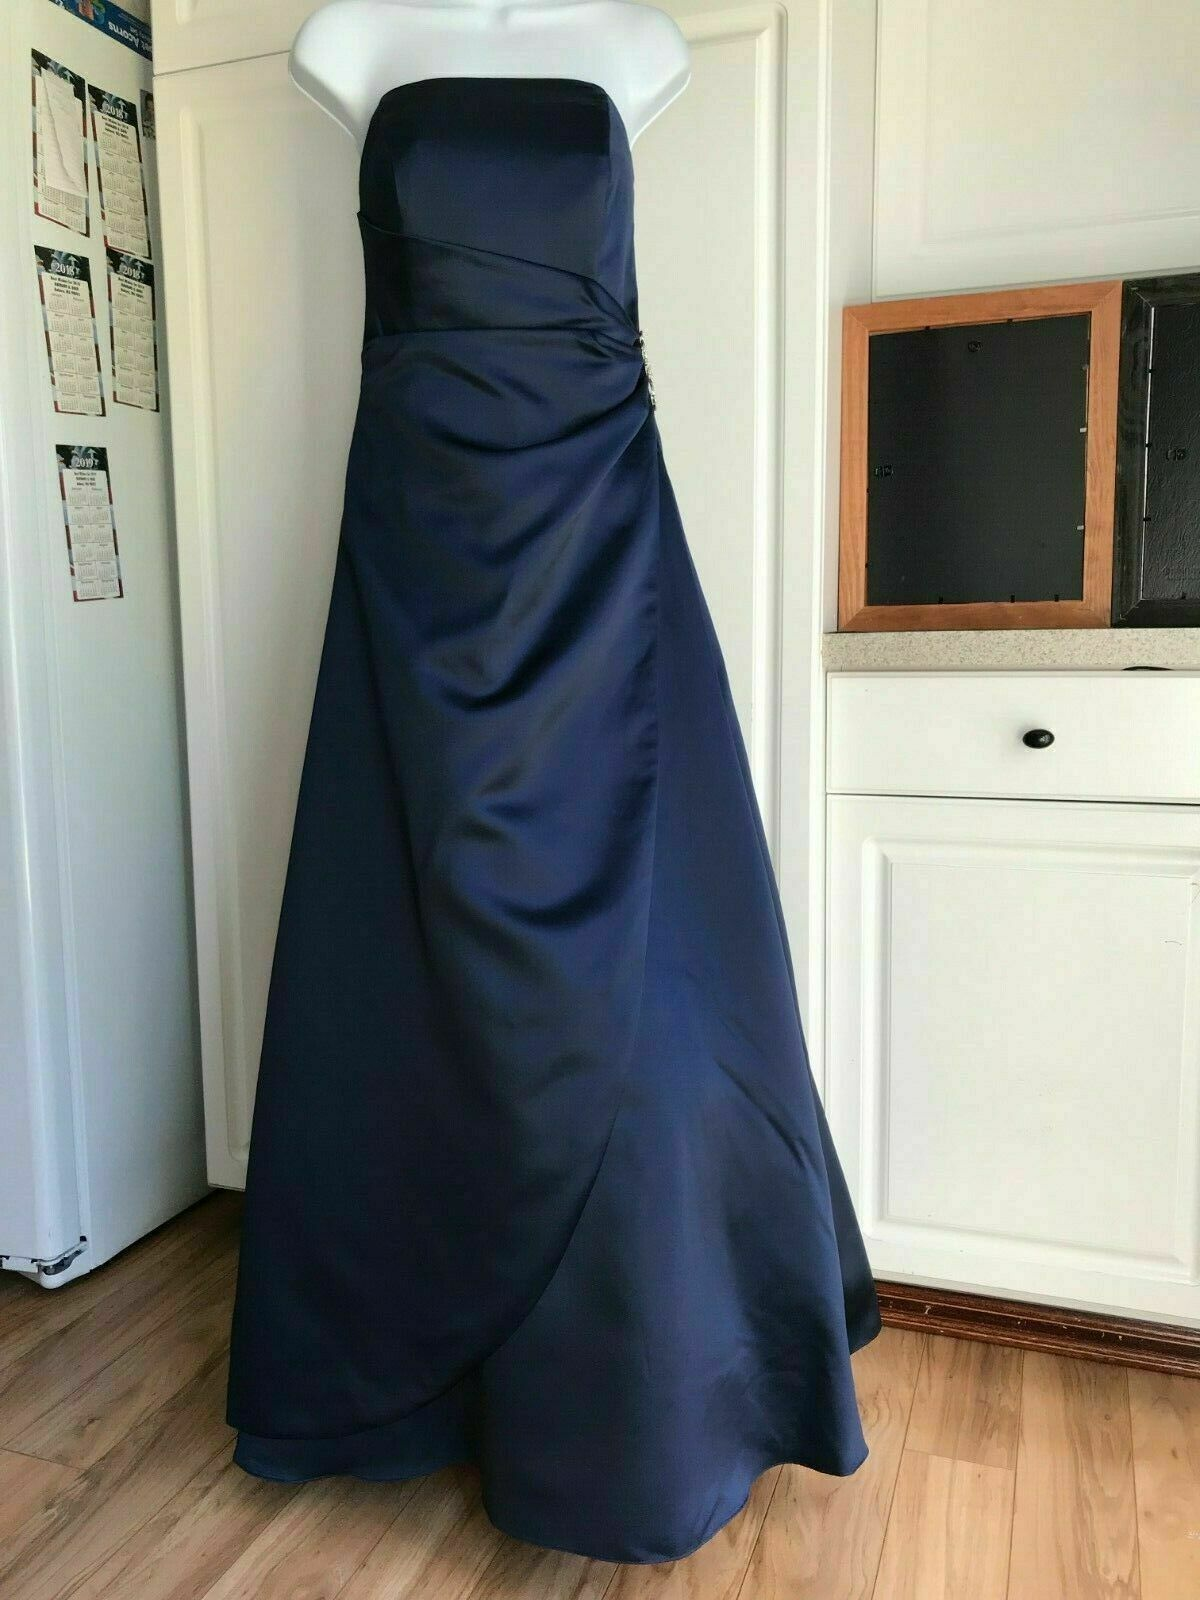 New David's Bridal Dress Size 8 Blue Long Wedding Prom Home Coming Formal Dance